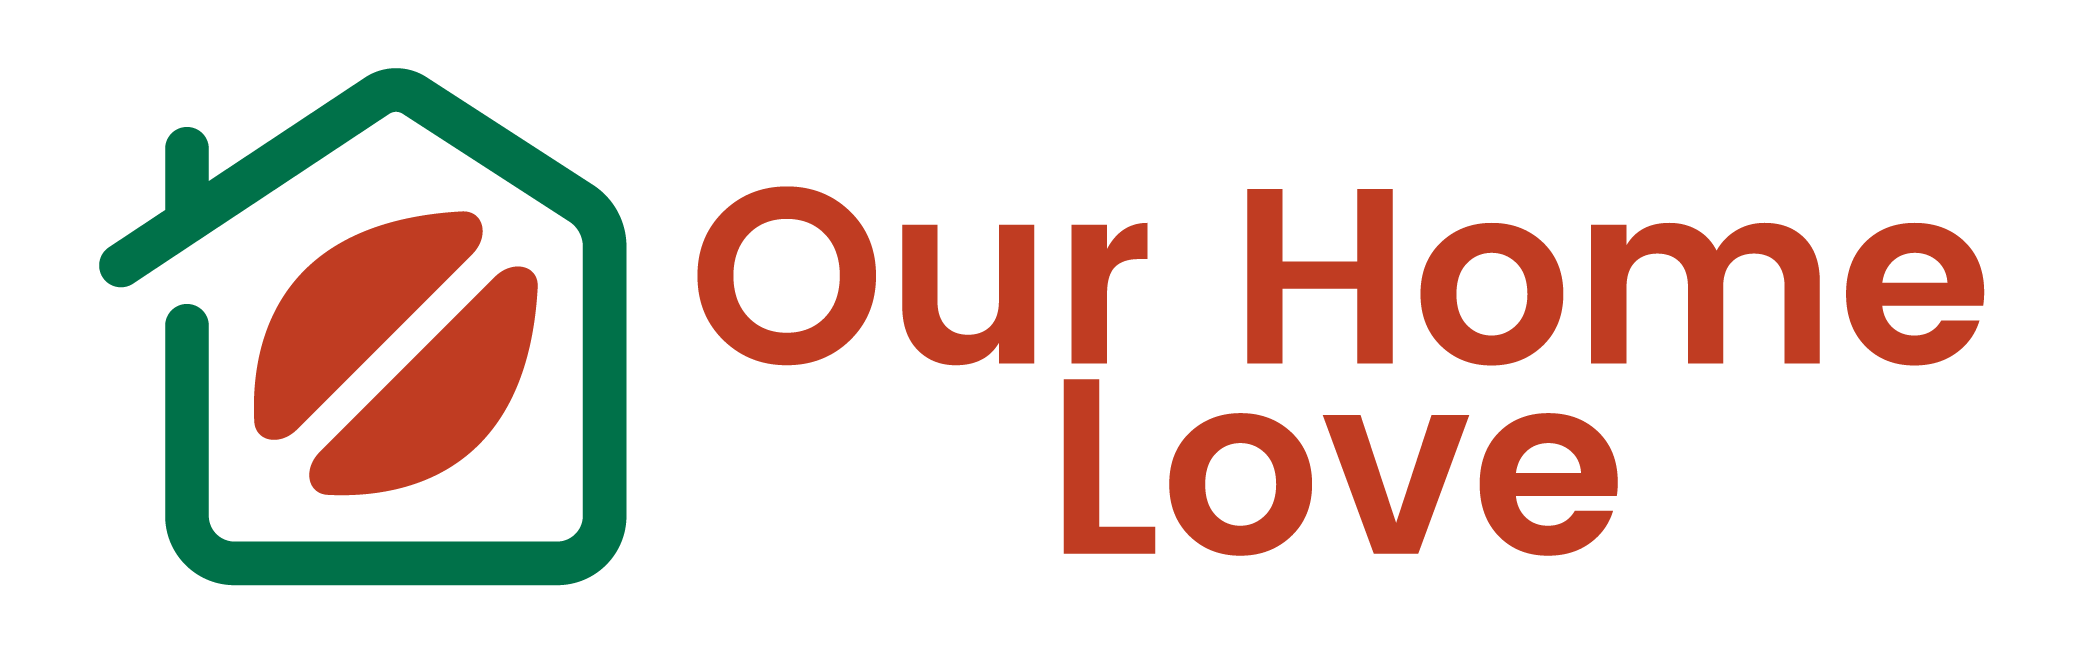 Our Home Love Logo